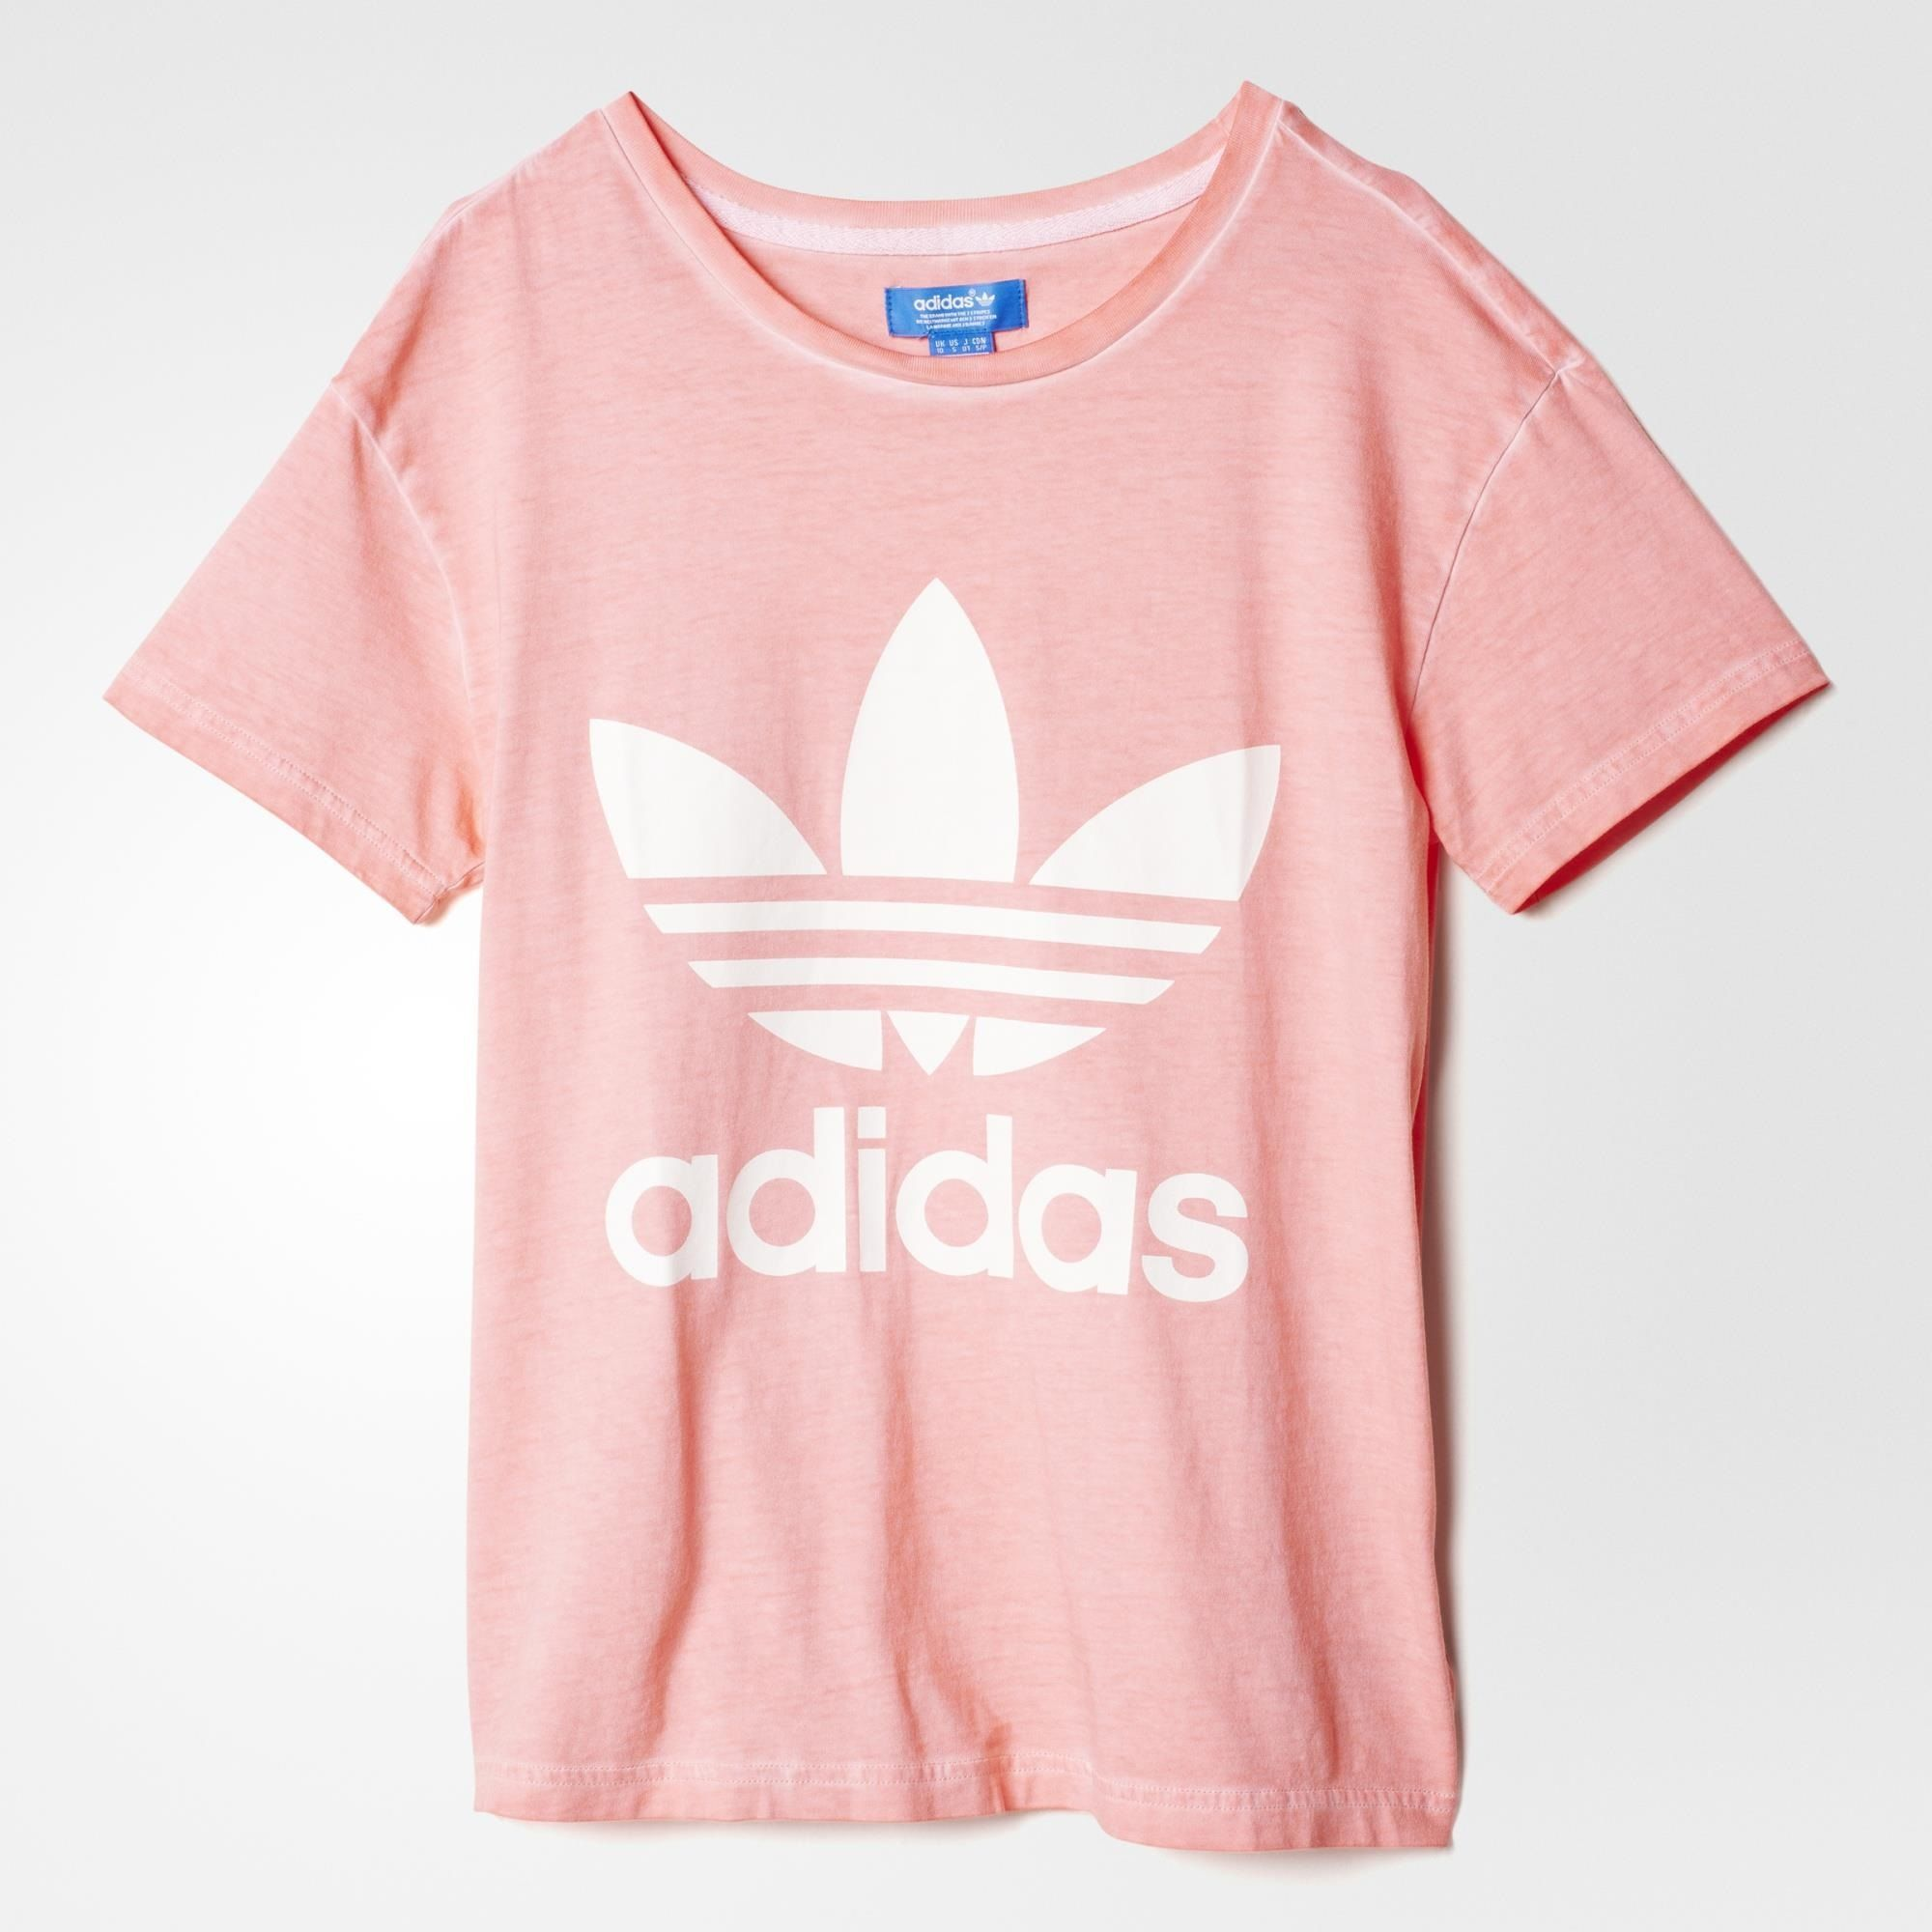 Adidas Originals Premium Essentials Washed Tee | Adidas